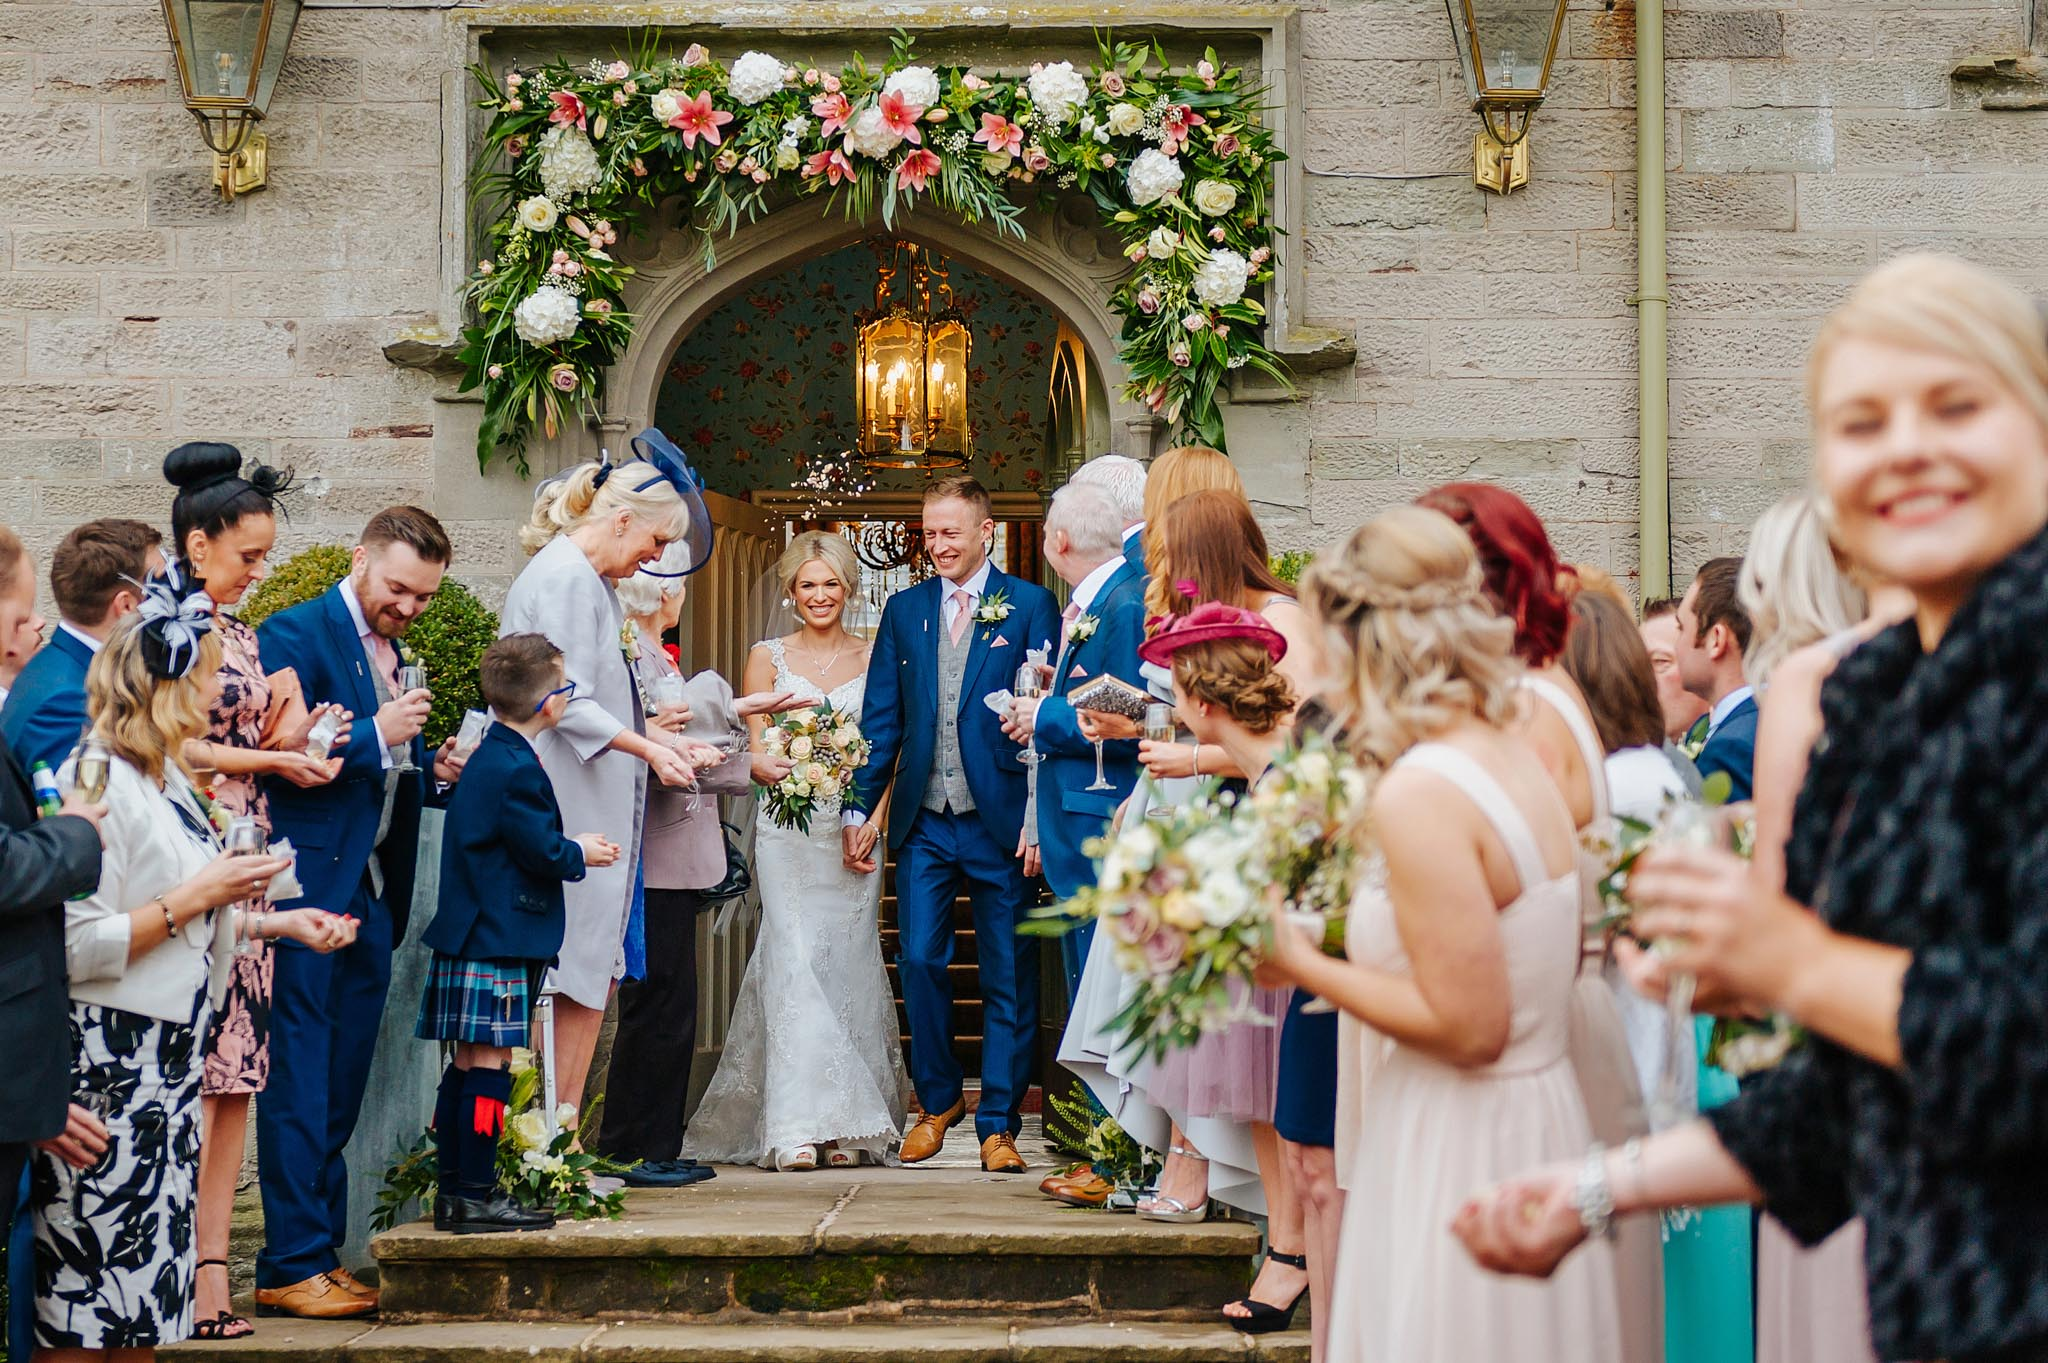 lemore manor wedding herefordshire 48 - Lemore Manor wedding, Herefordshire - West Midlands | Sadie + Ken